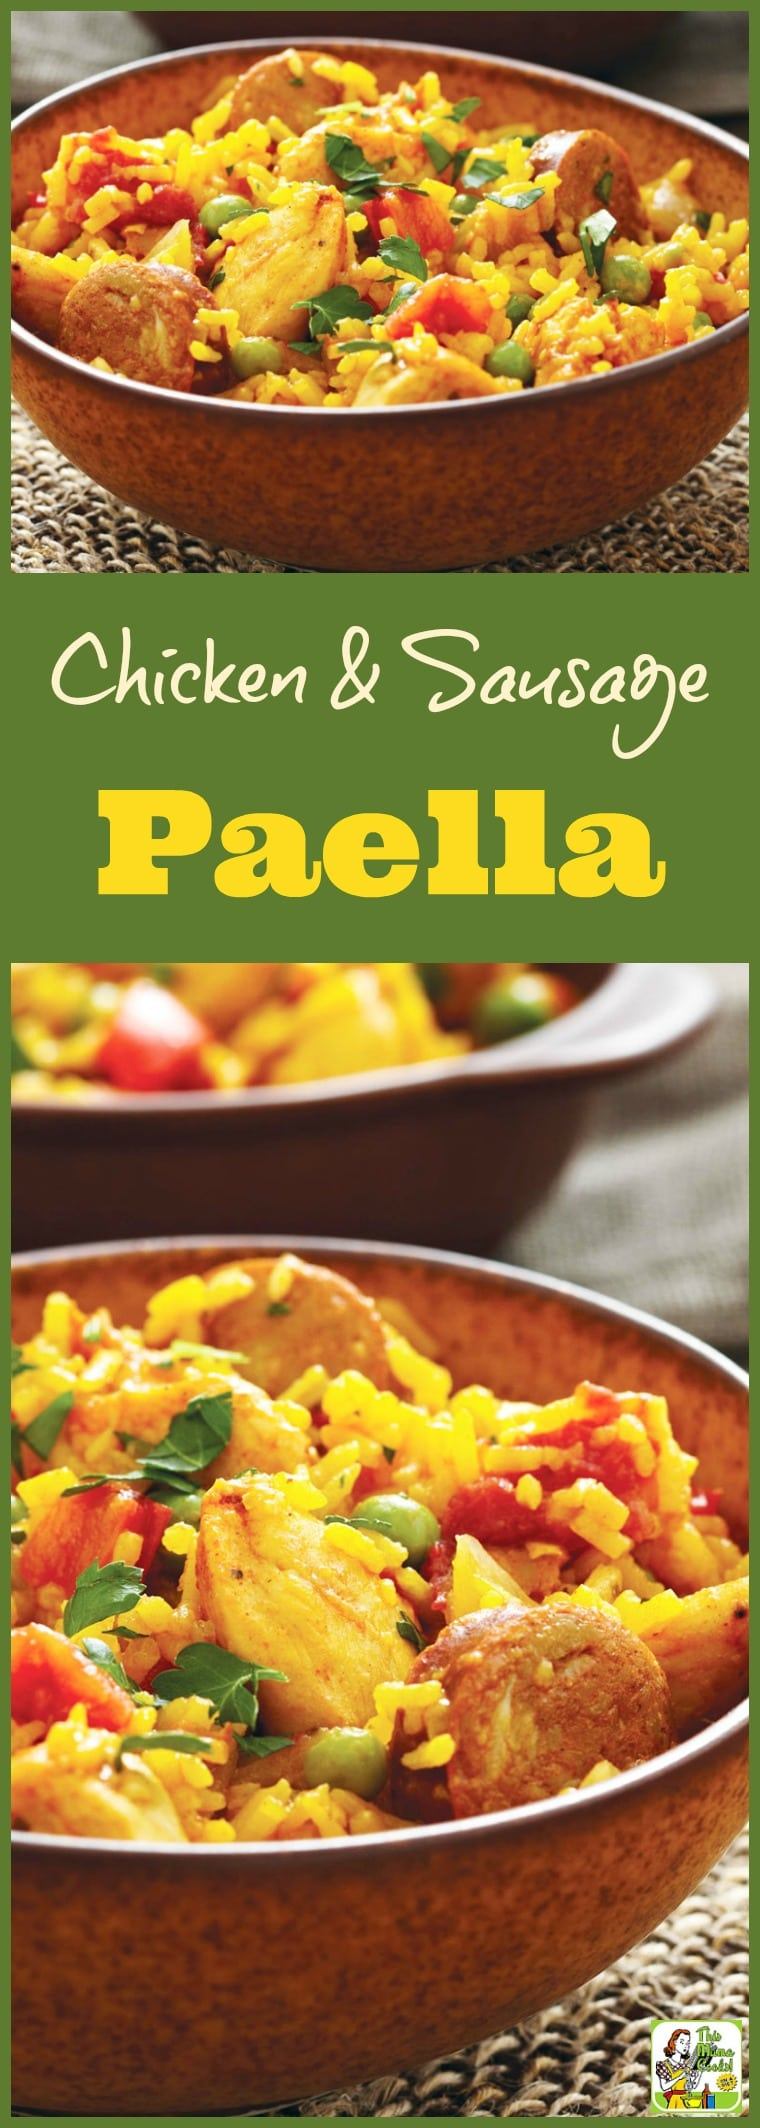 Chicken and Sausage Paella recipe. This one pot, gluten free, chicken, rice and sausage recipe is gluten free and allergy free. #recipes #easy #recipeoftheday #glutenfree #easyrecipe #easyrecipes #glutenfreerecipes #dinner #easydinner #dinnerrecipes #dinnerideas #chicken #chickenfoodrecipes #chickenrecipes #onepot